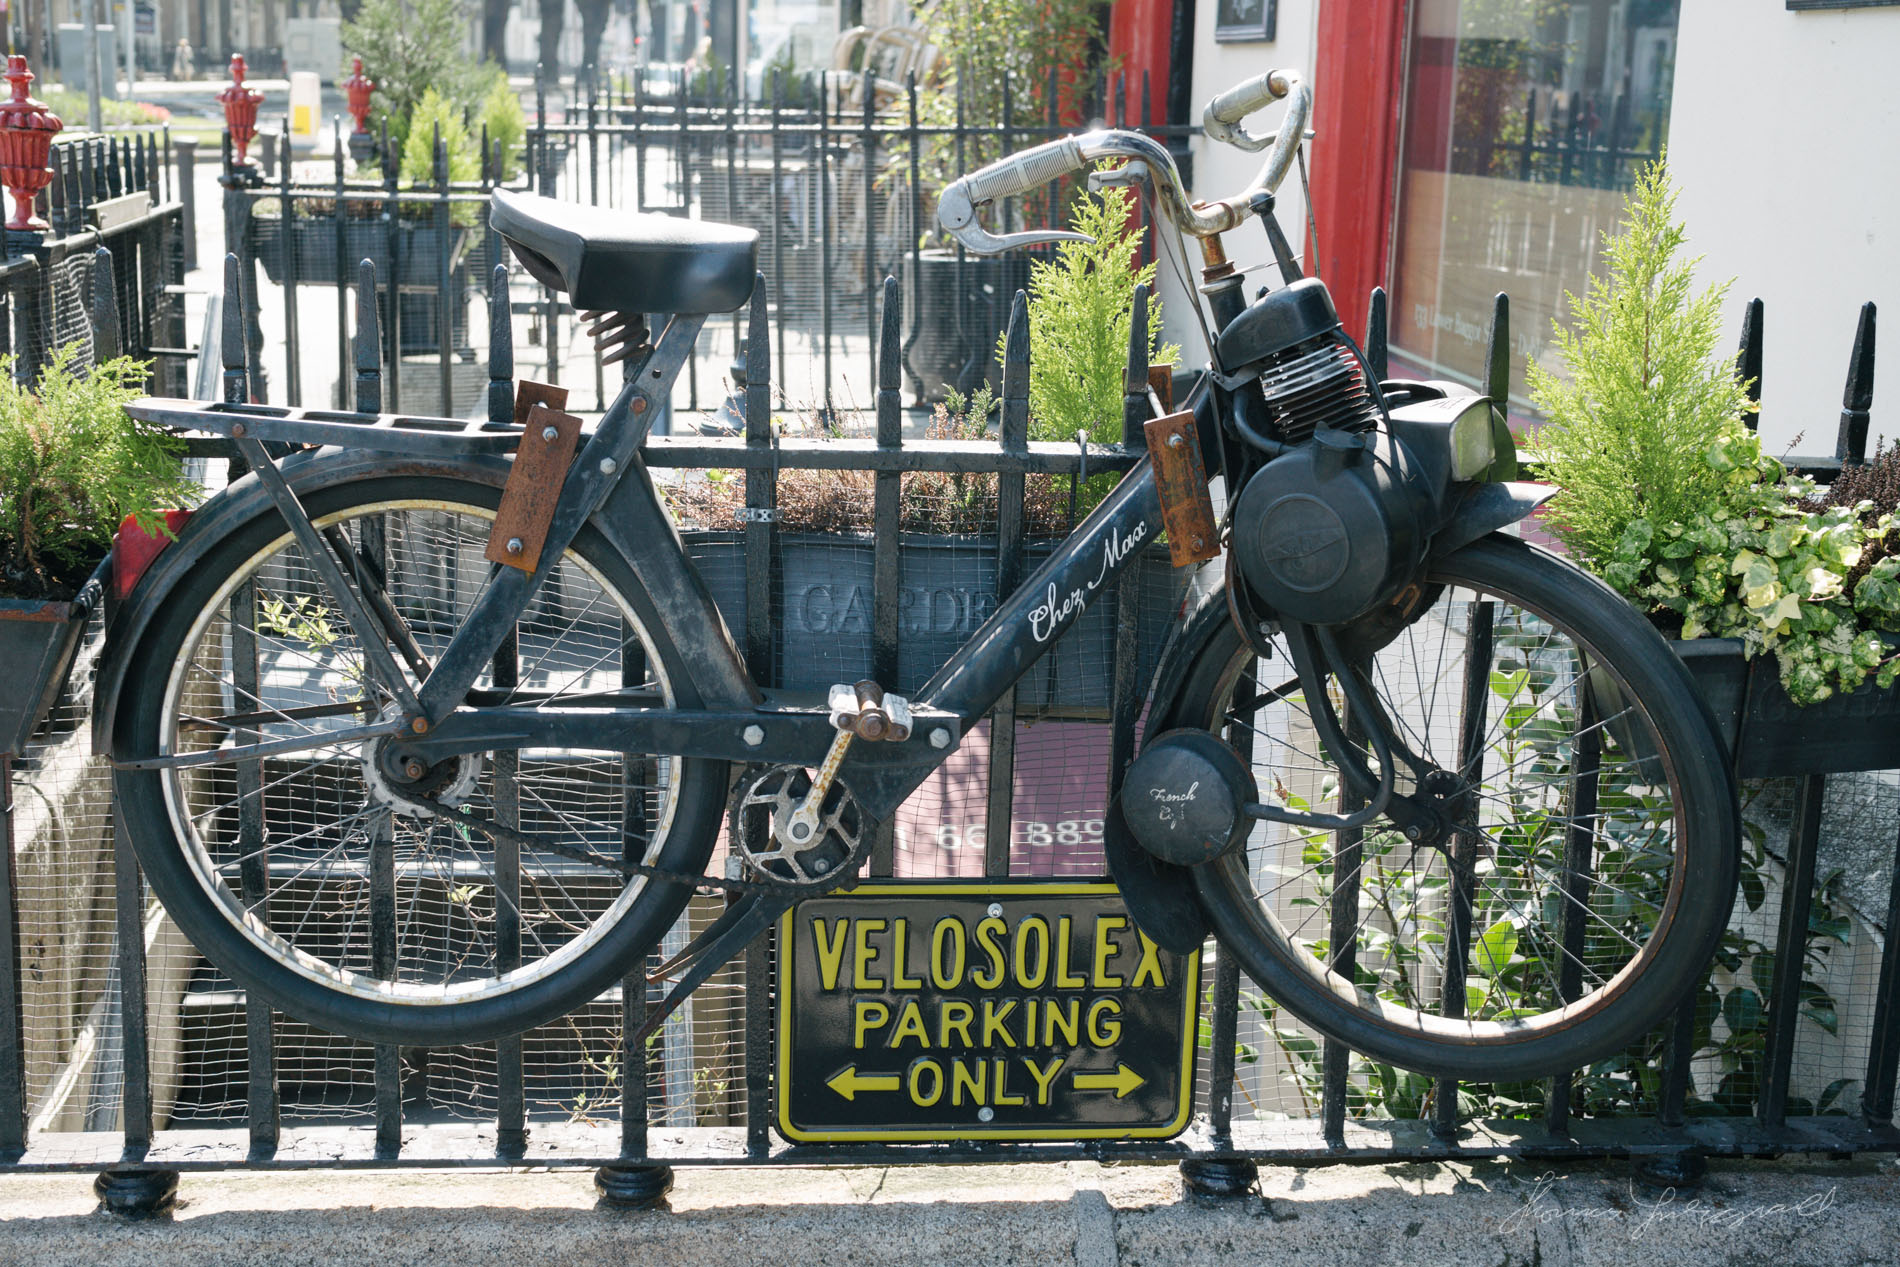 Old bicycle used for Advertising